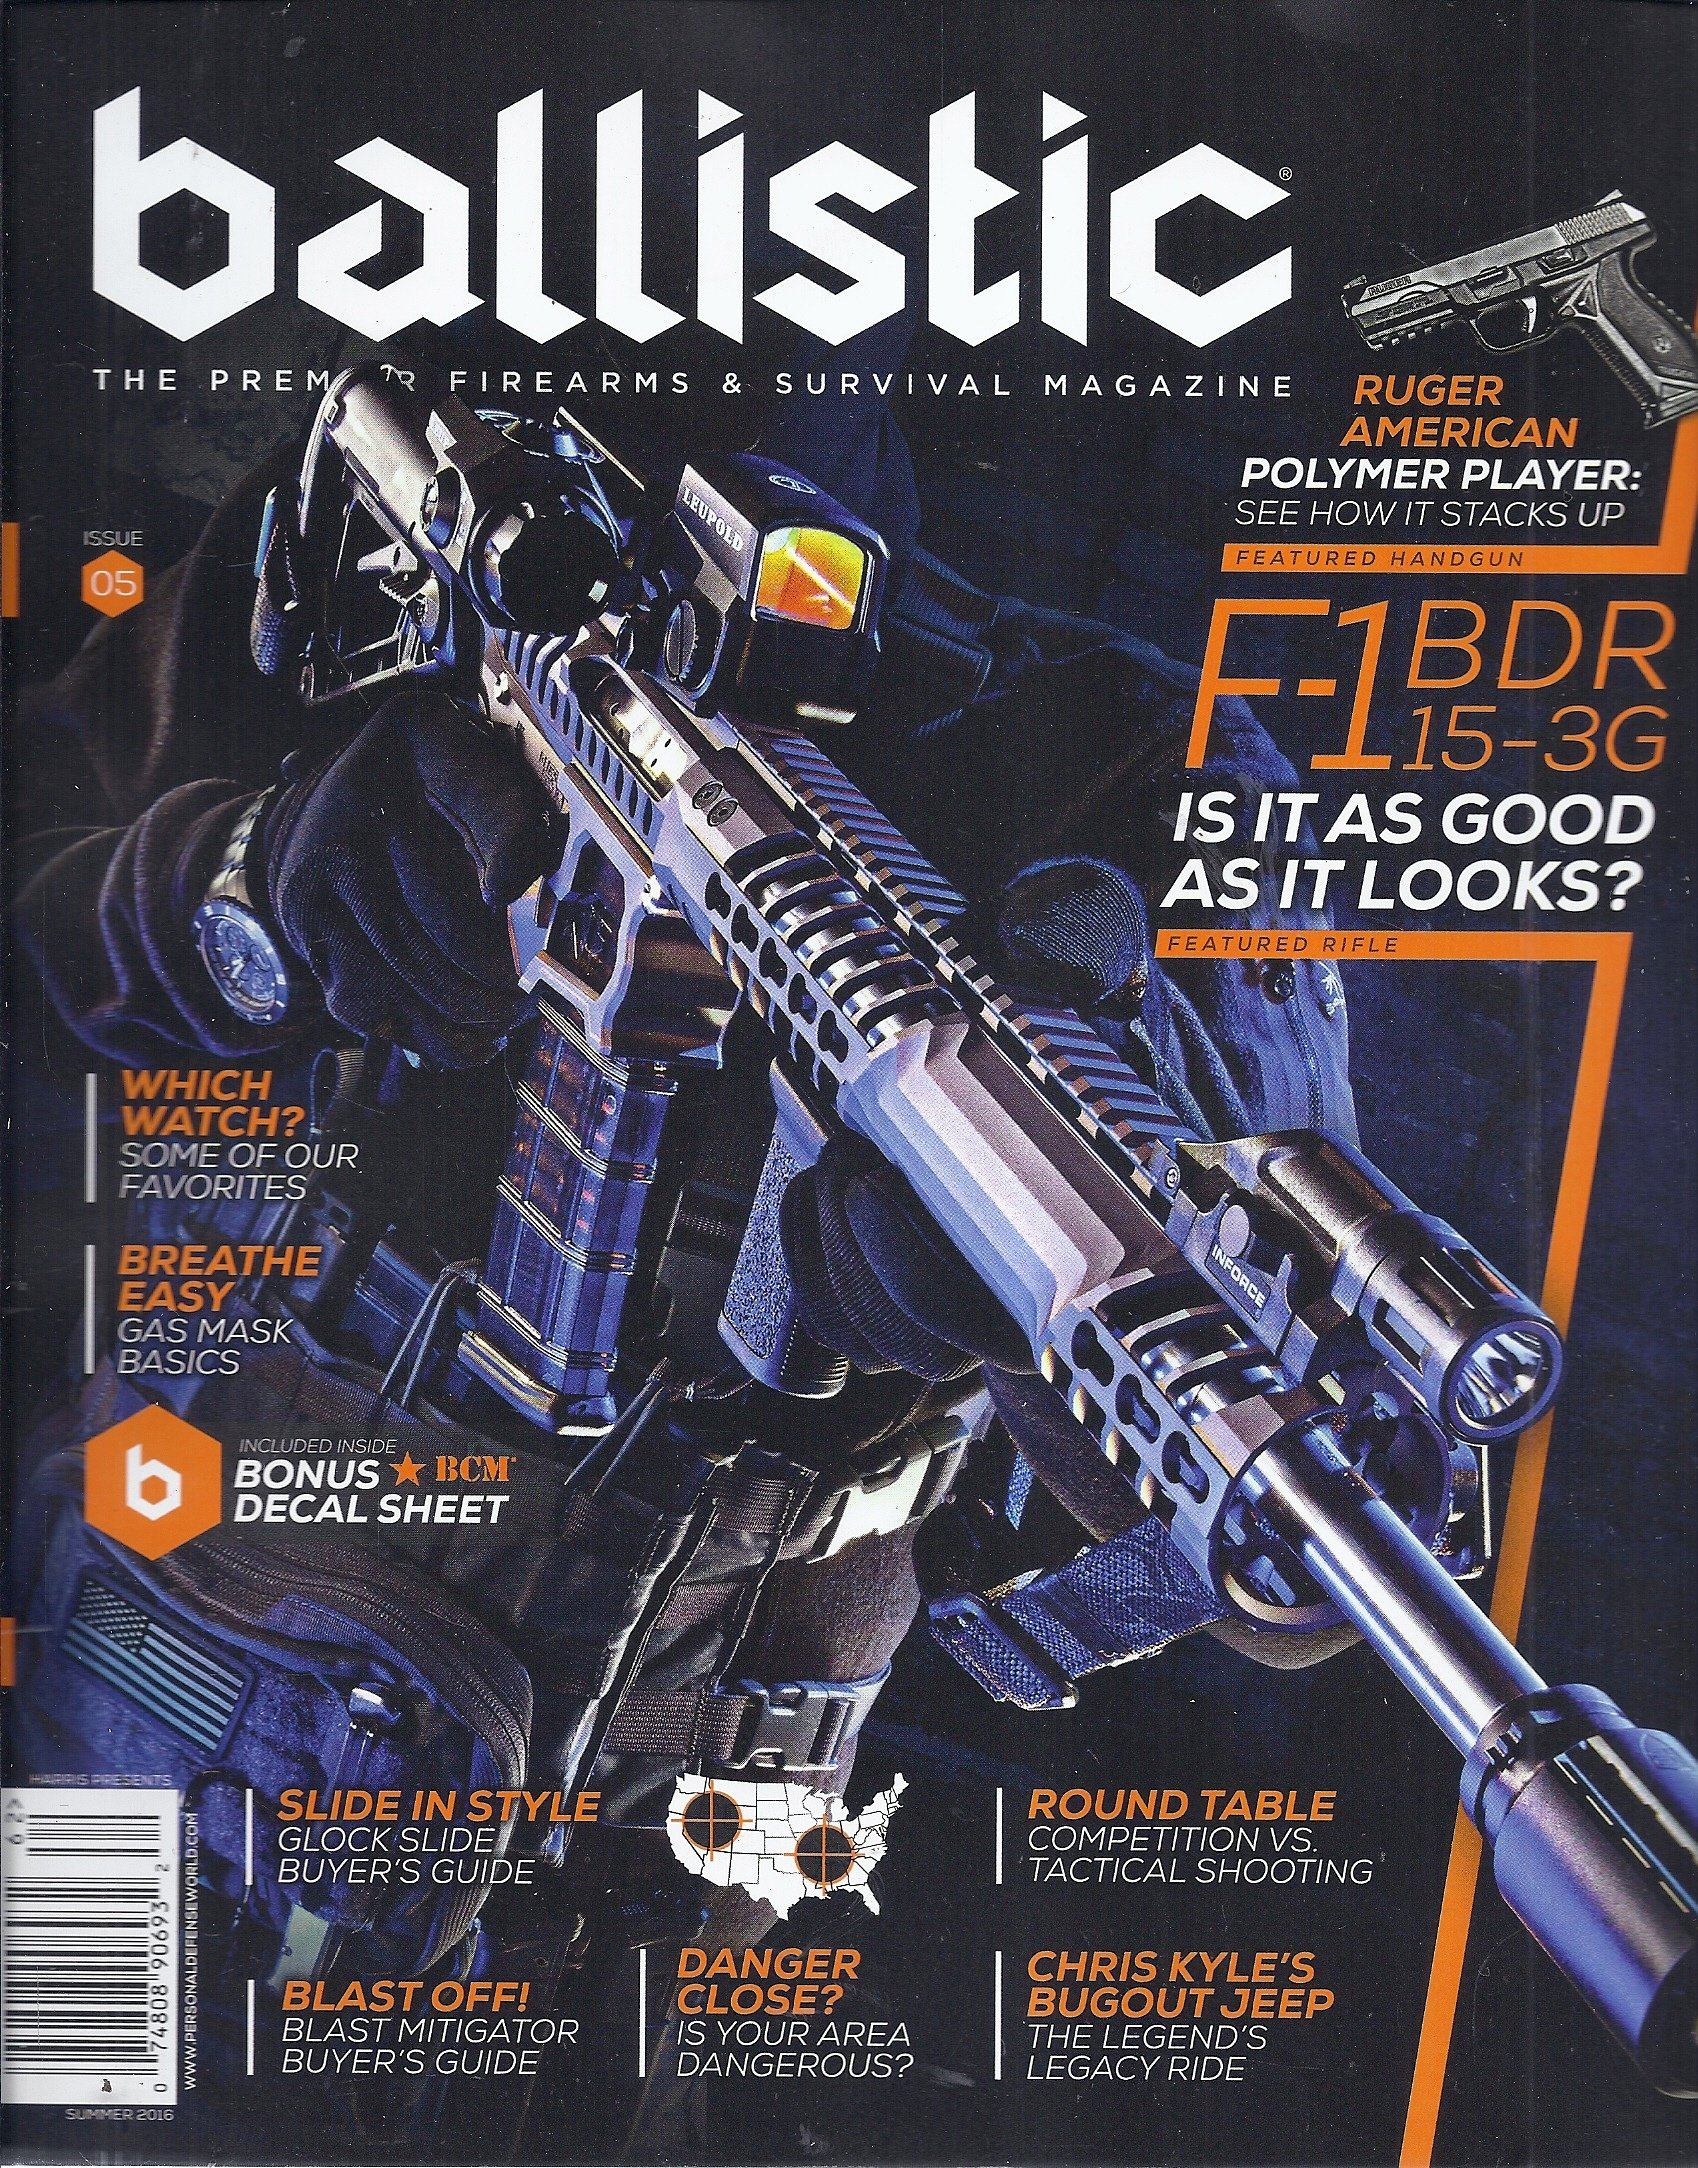 Download Harris Presents Ballistic Magazine (Summer 2016 - Cover: F-1 BDR 15-3G pdf